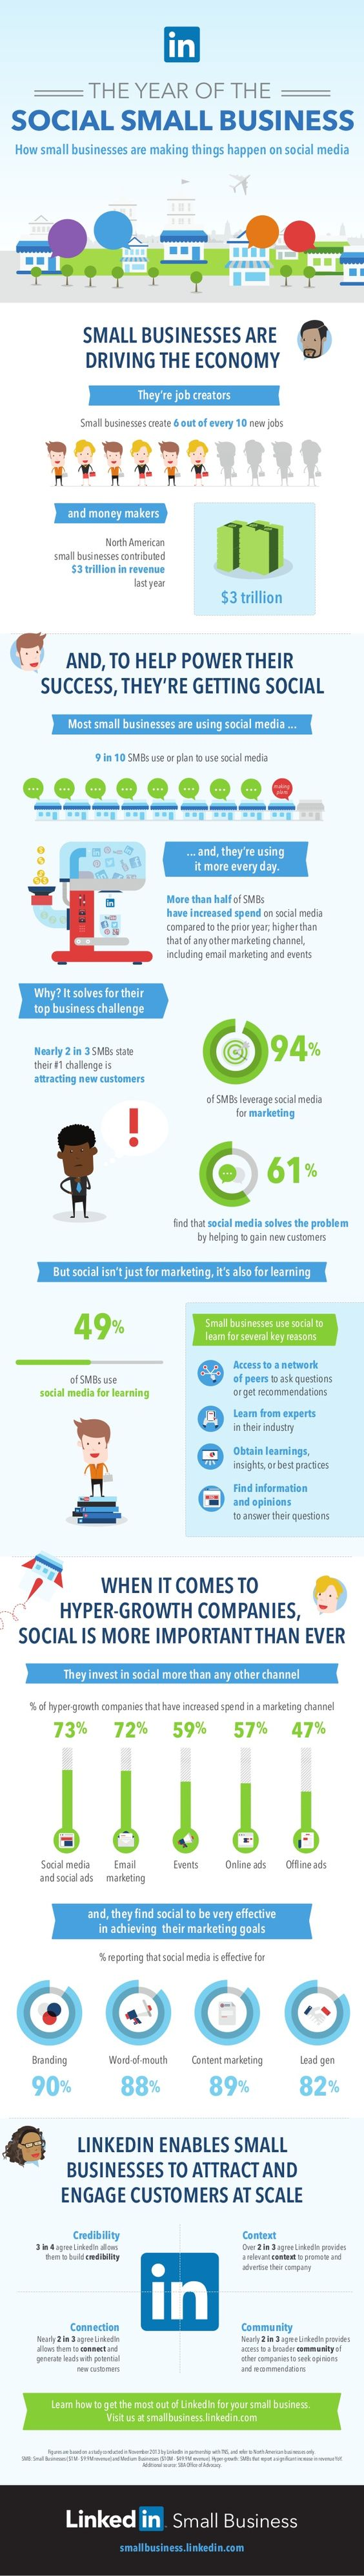 Social media use by small business in the US - LinkednIn research November 2013 - 94 percent of SMB's state they use social media for marketing